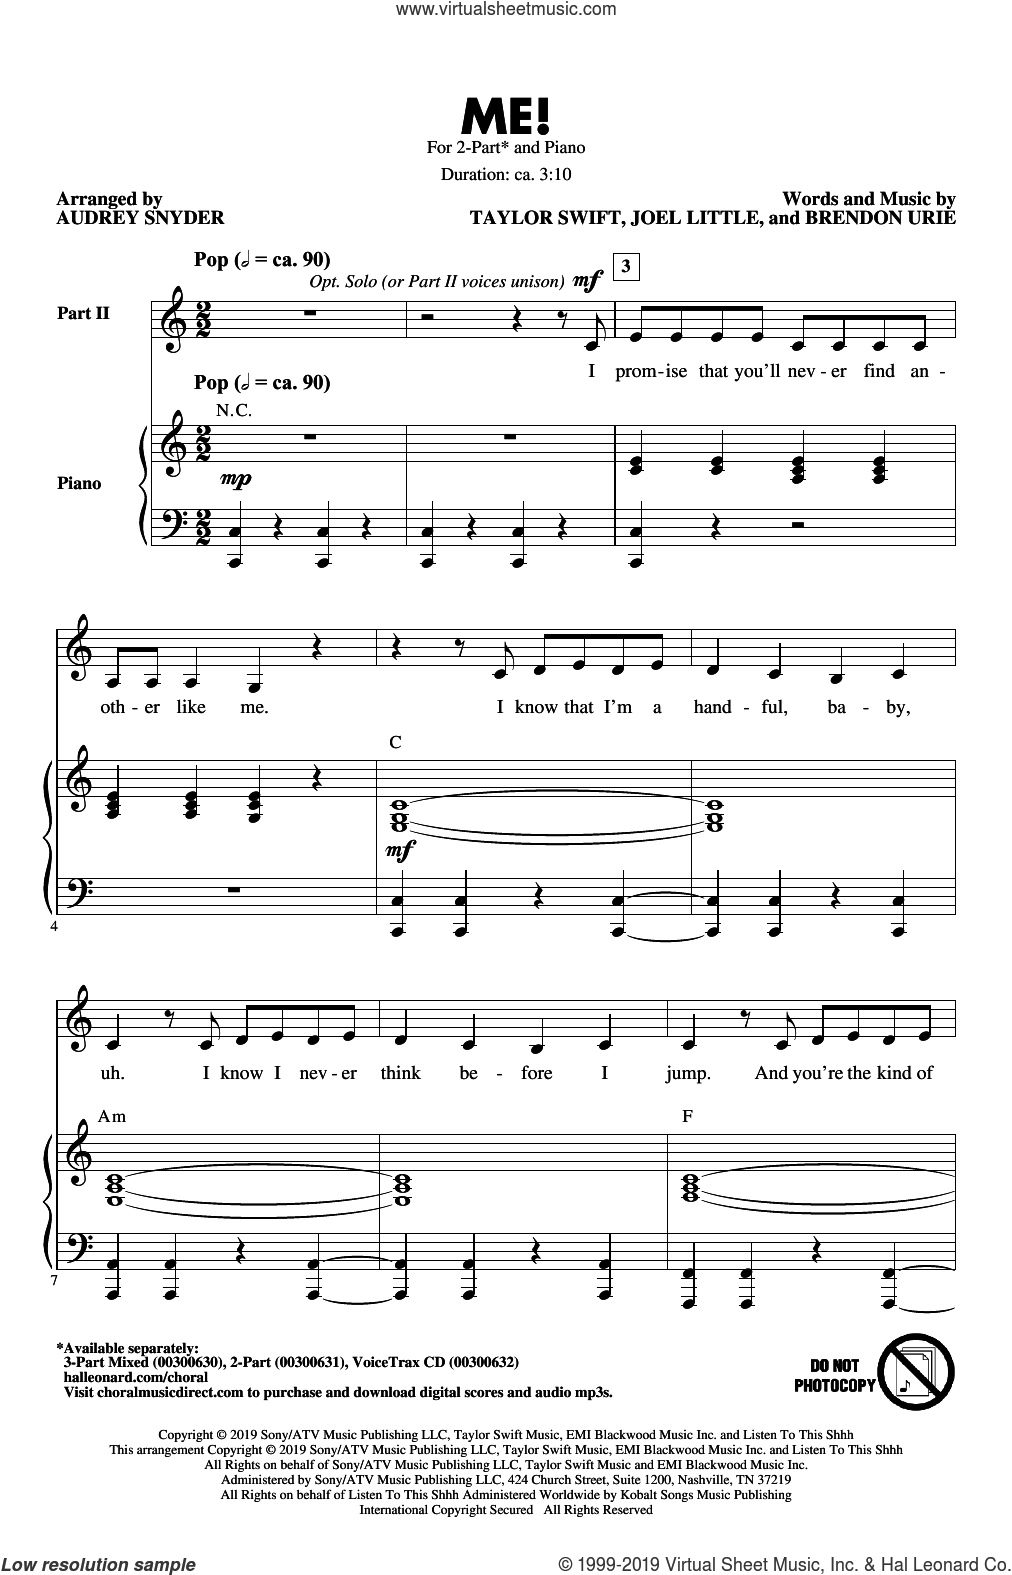 ME! (arr. Audrey Snyder) sheet music for choir (2-Part) by Taylor Swift, Audrey Snyder, Brendon Urie and Joel Little, intermediate duet